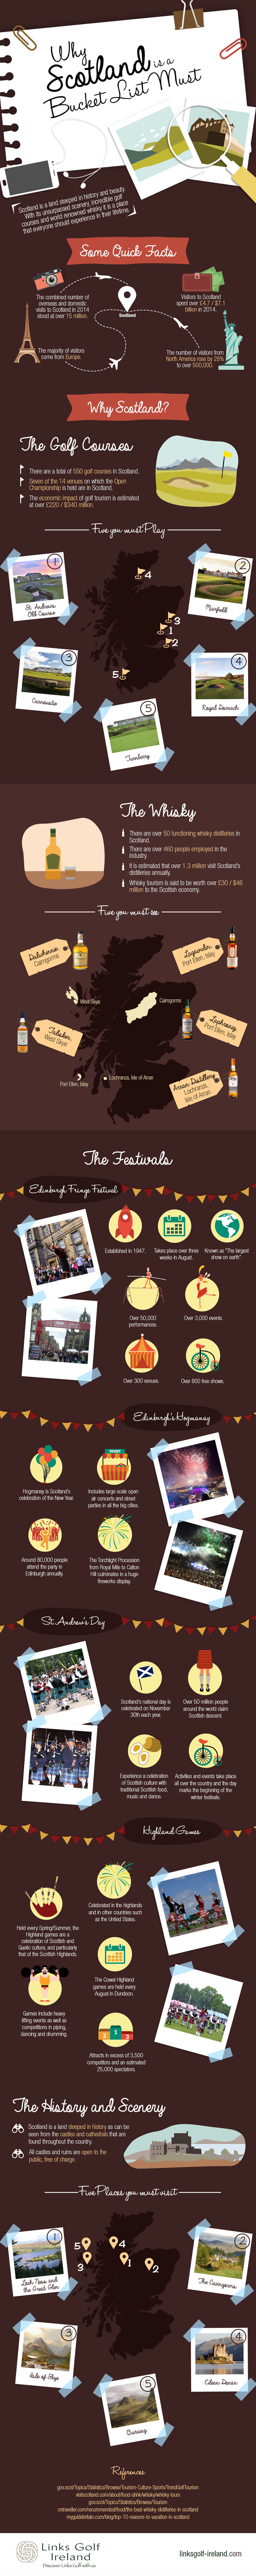 Scotland As A Bucket List Destination- An Infographic